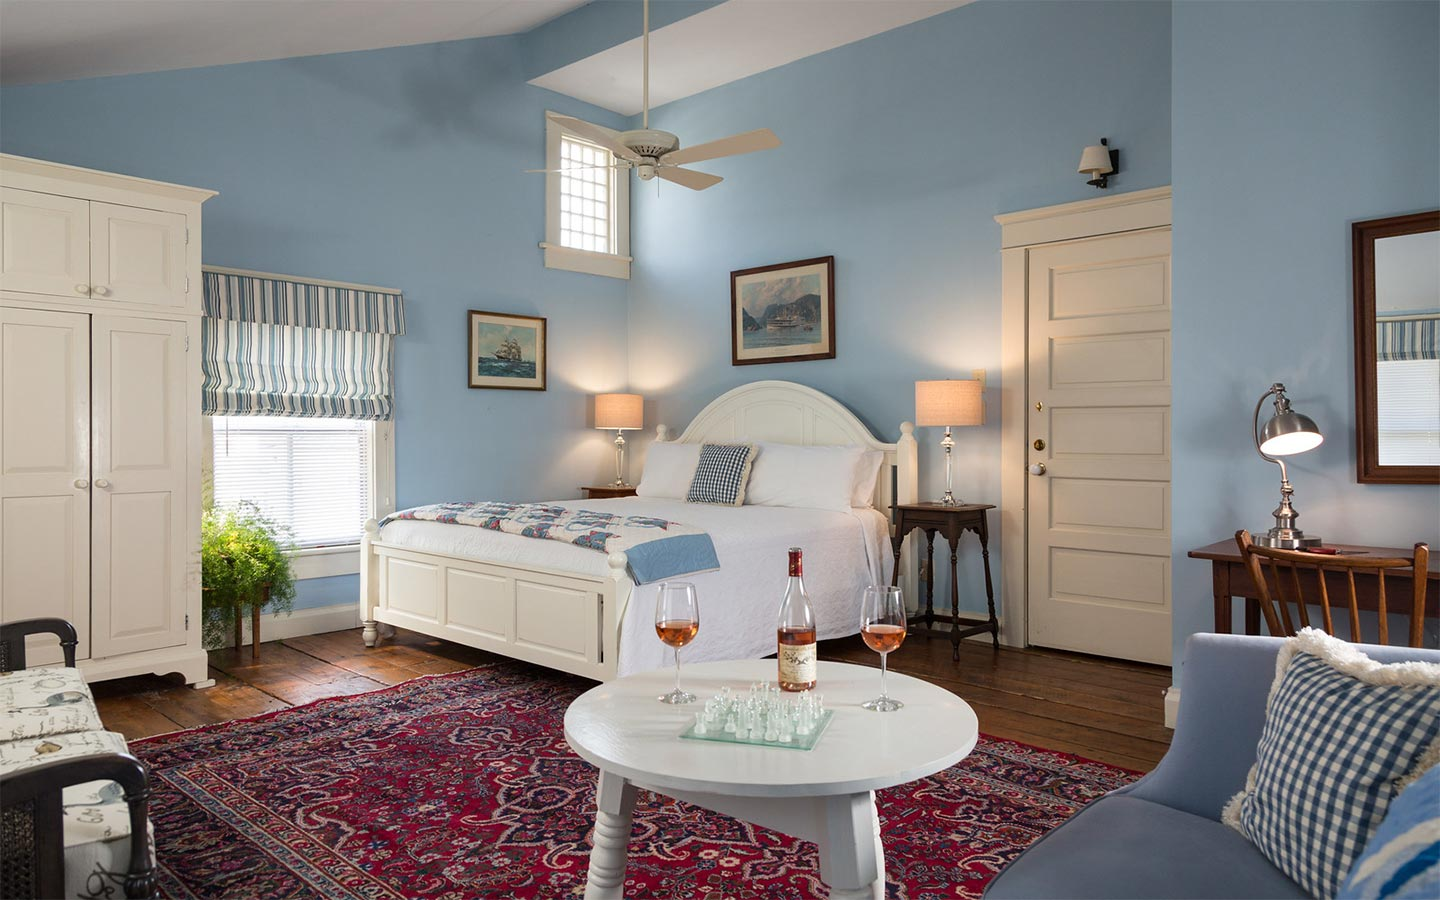 Edenton NC Bed and Breakfast vaulted ceilings room